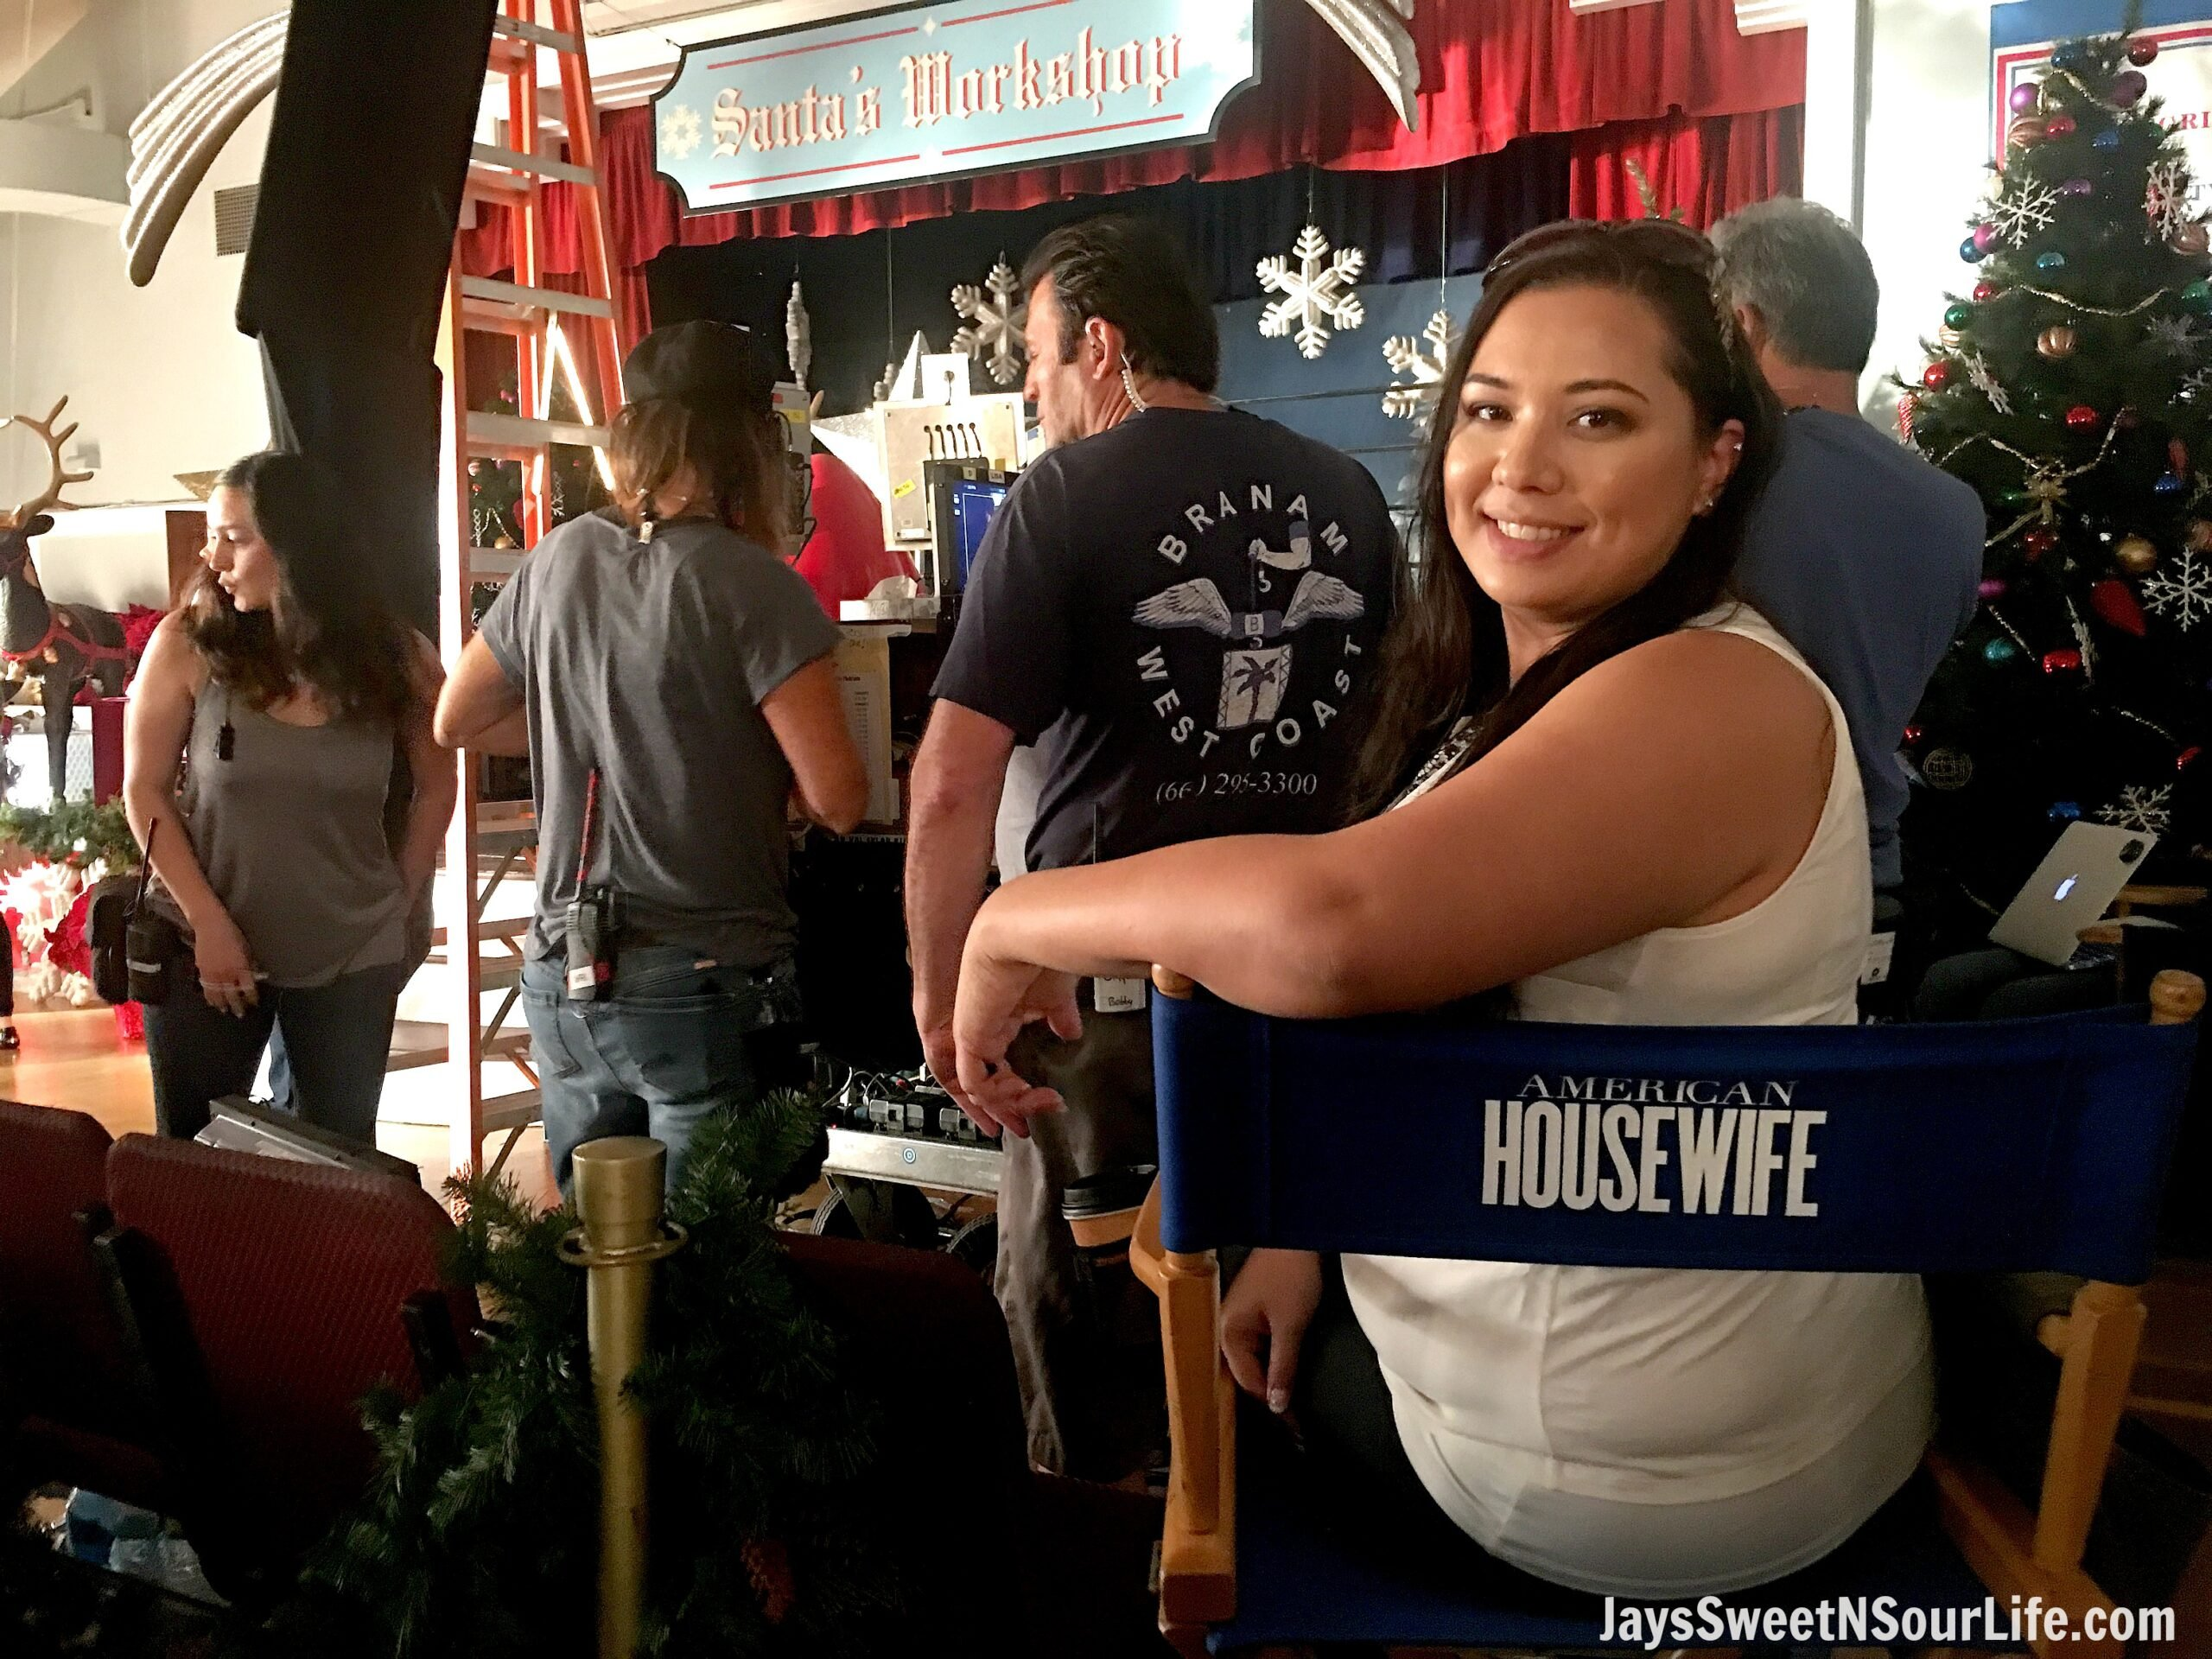 Ever wondered what goes on behind the scenes of your favorite tv shows? Well today I'm spilling the beans about my trip Behind the Scenes with ABC's American Housewife. Checkout all the details and photos of places you might recognize from the show!